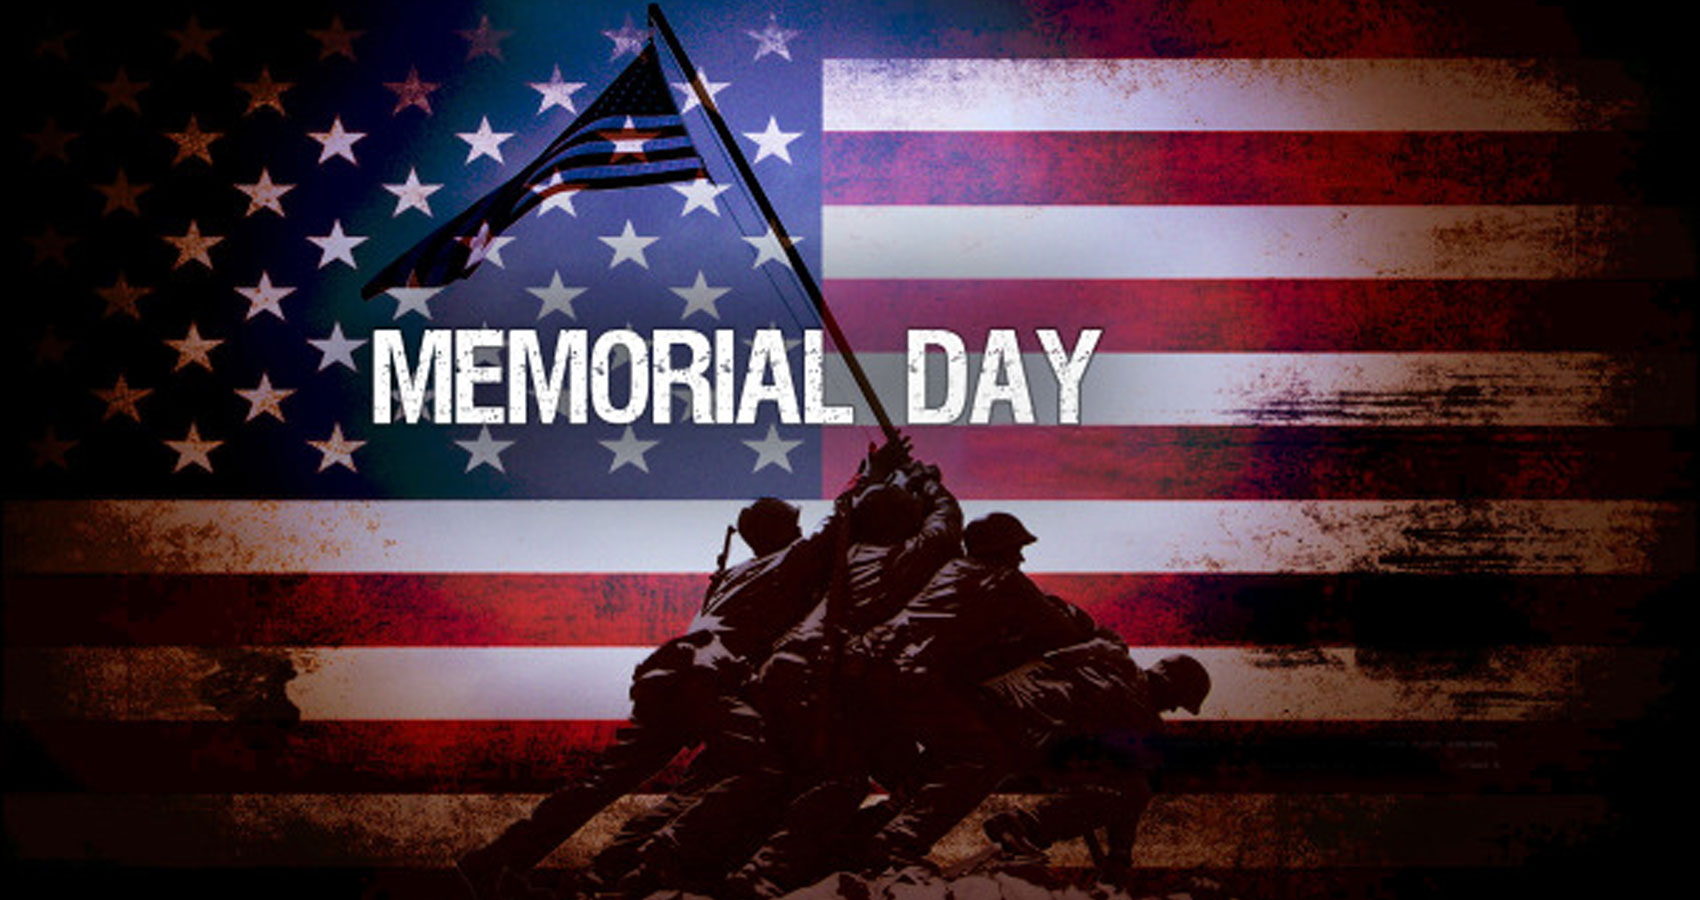 Memorial Day History at Spillwords.com